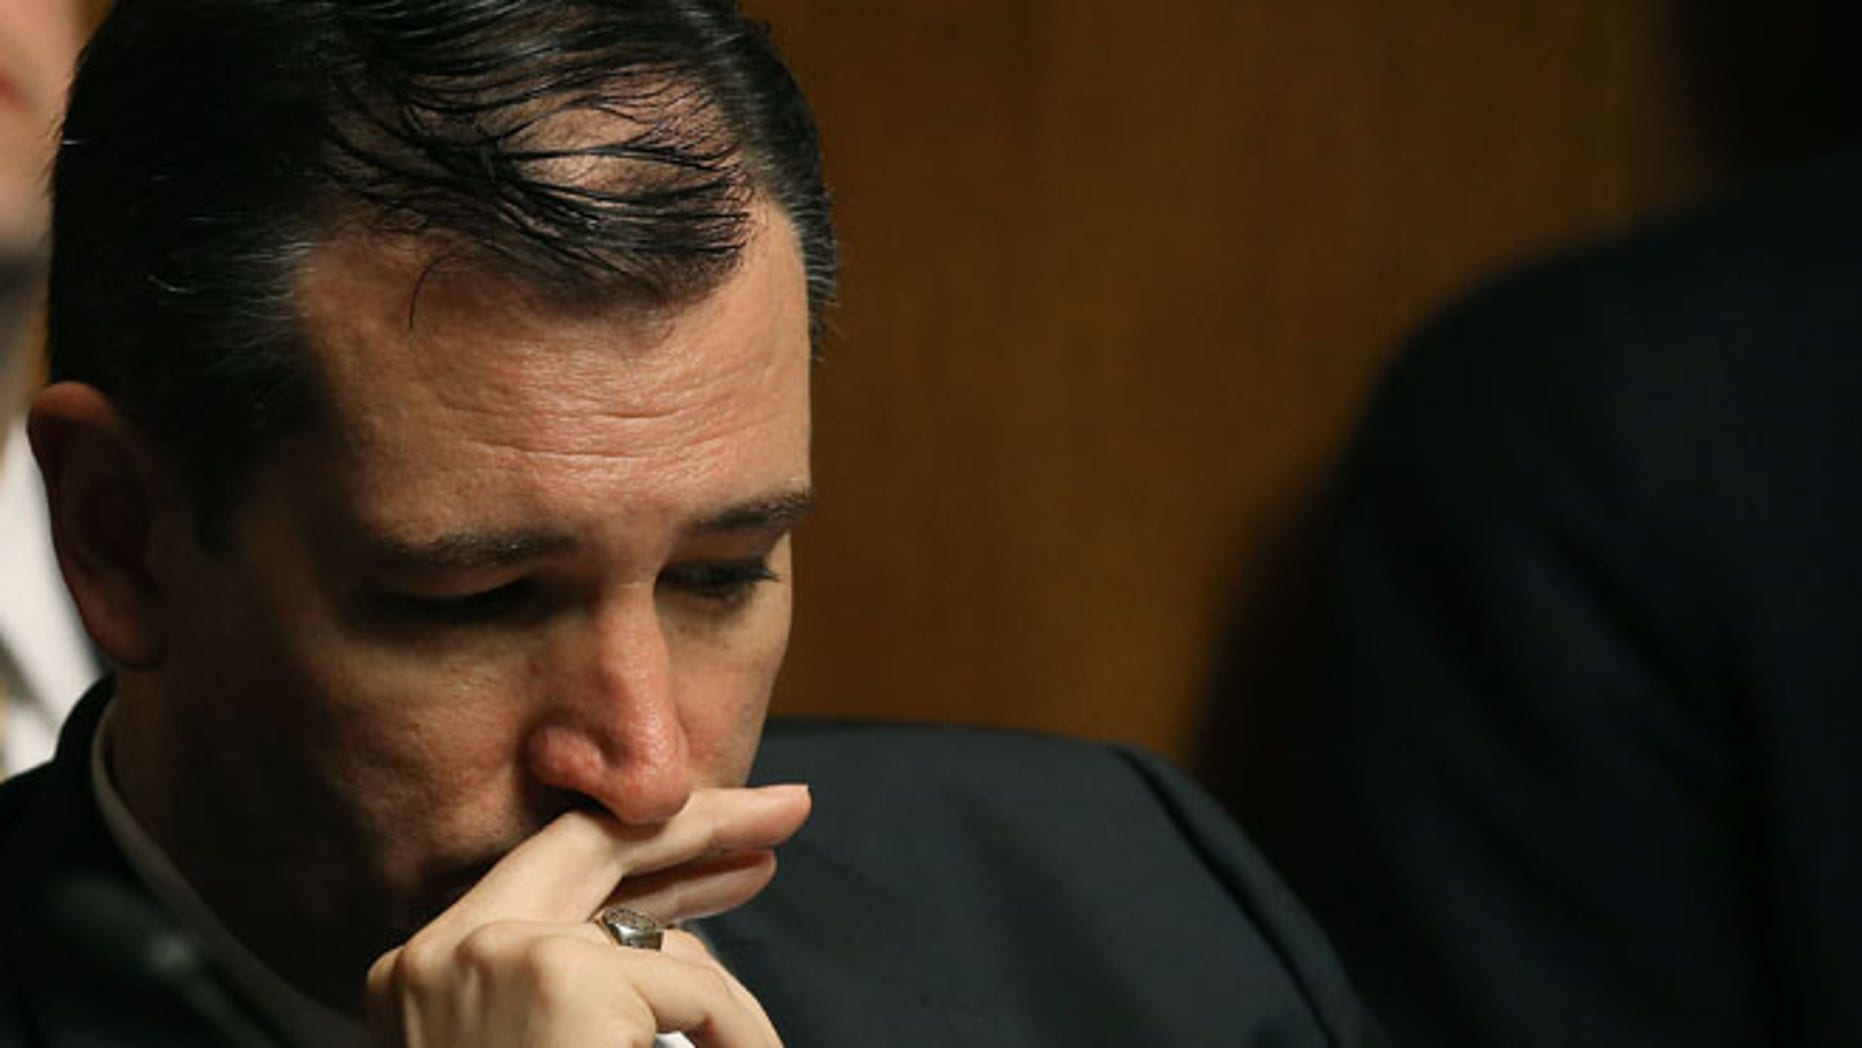 """WASHINGTON, DC - JUNE 04: Sen. Ted Cruz (R-TX) participates in a Judiciary Subcommittee hearing on the Affordable Care Act on Capitol Hill June 4, 2015 in Washington, DC. The hearing is billed as """"Rewriting The Law, Examining the Process That Led to the ObamaCare Subsidy Rule"""".  (Photo by Mark Wilson/Getty Images)"""